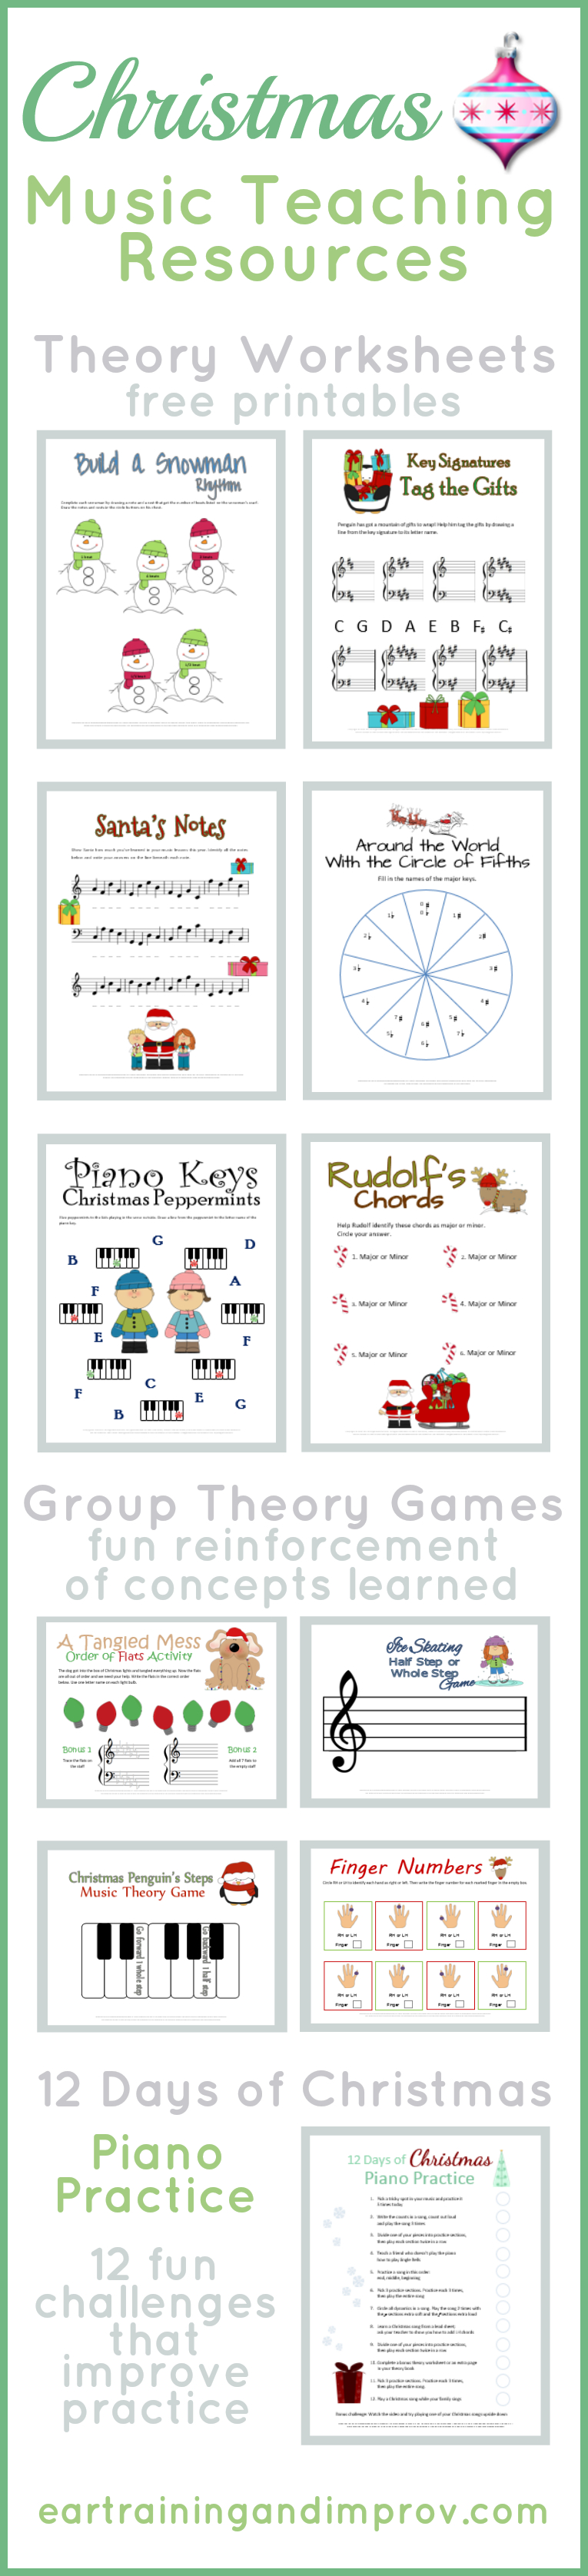 Christmas Music Theory Worksheets - 20+ Free Printables | Printable Theory Worksheets